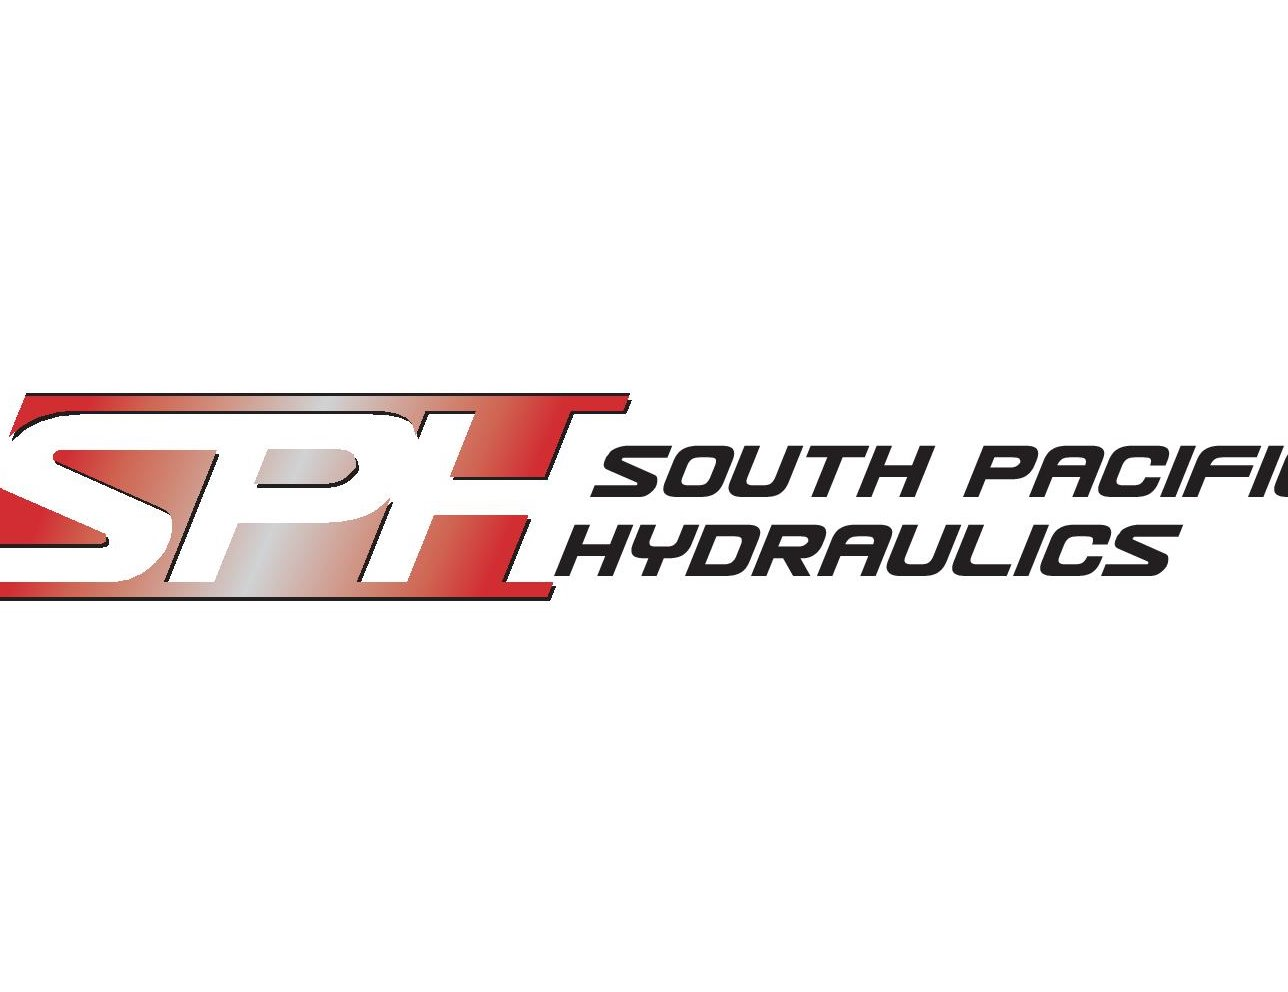 South Pacific Hydraulics Ltd